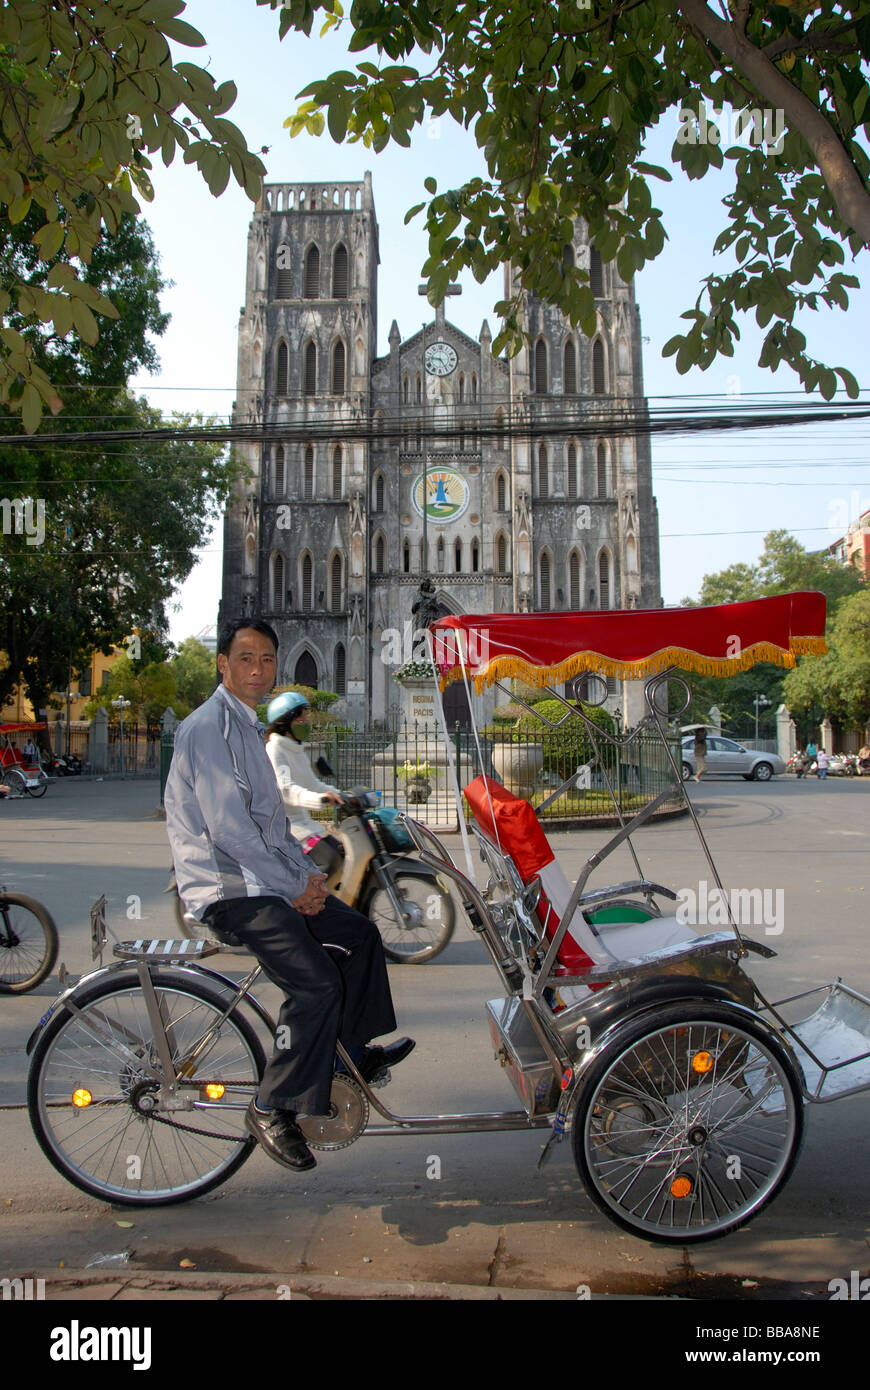 Cyclo drivers waiting, in the back the neo-Gothic St Joseph's Cathedral, Hanoi, Vietnam, Southeast Asia, Asia - Stock Image